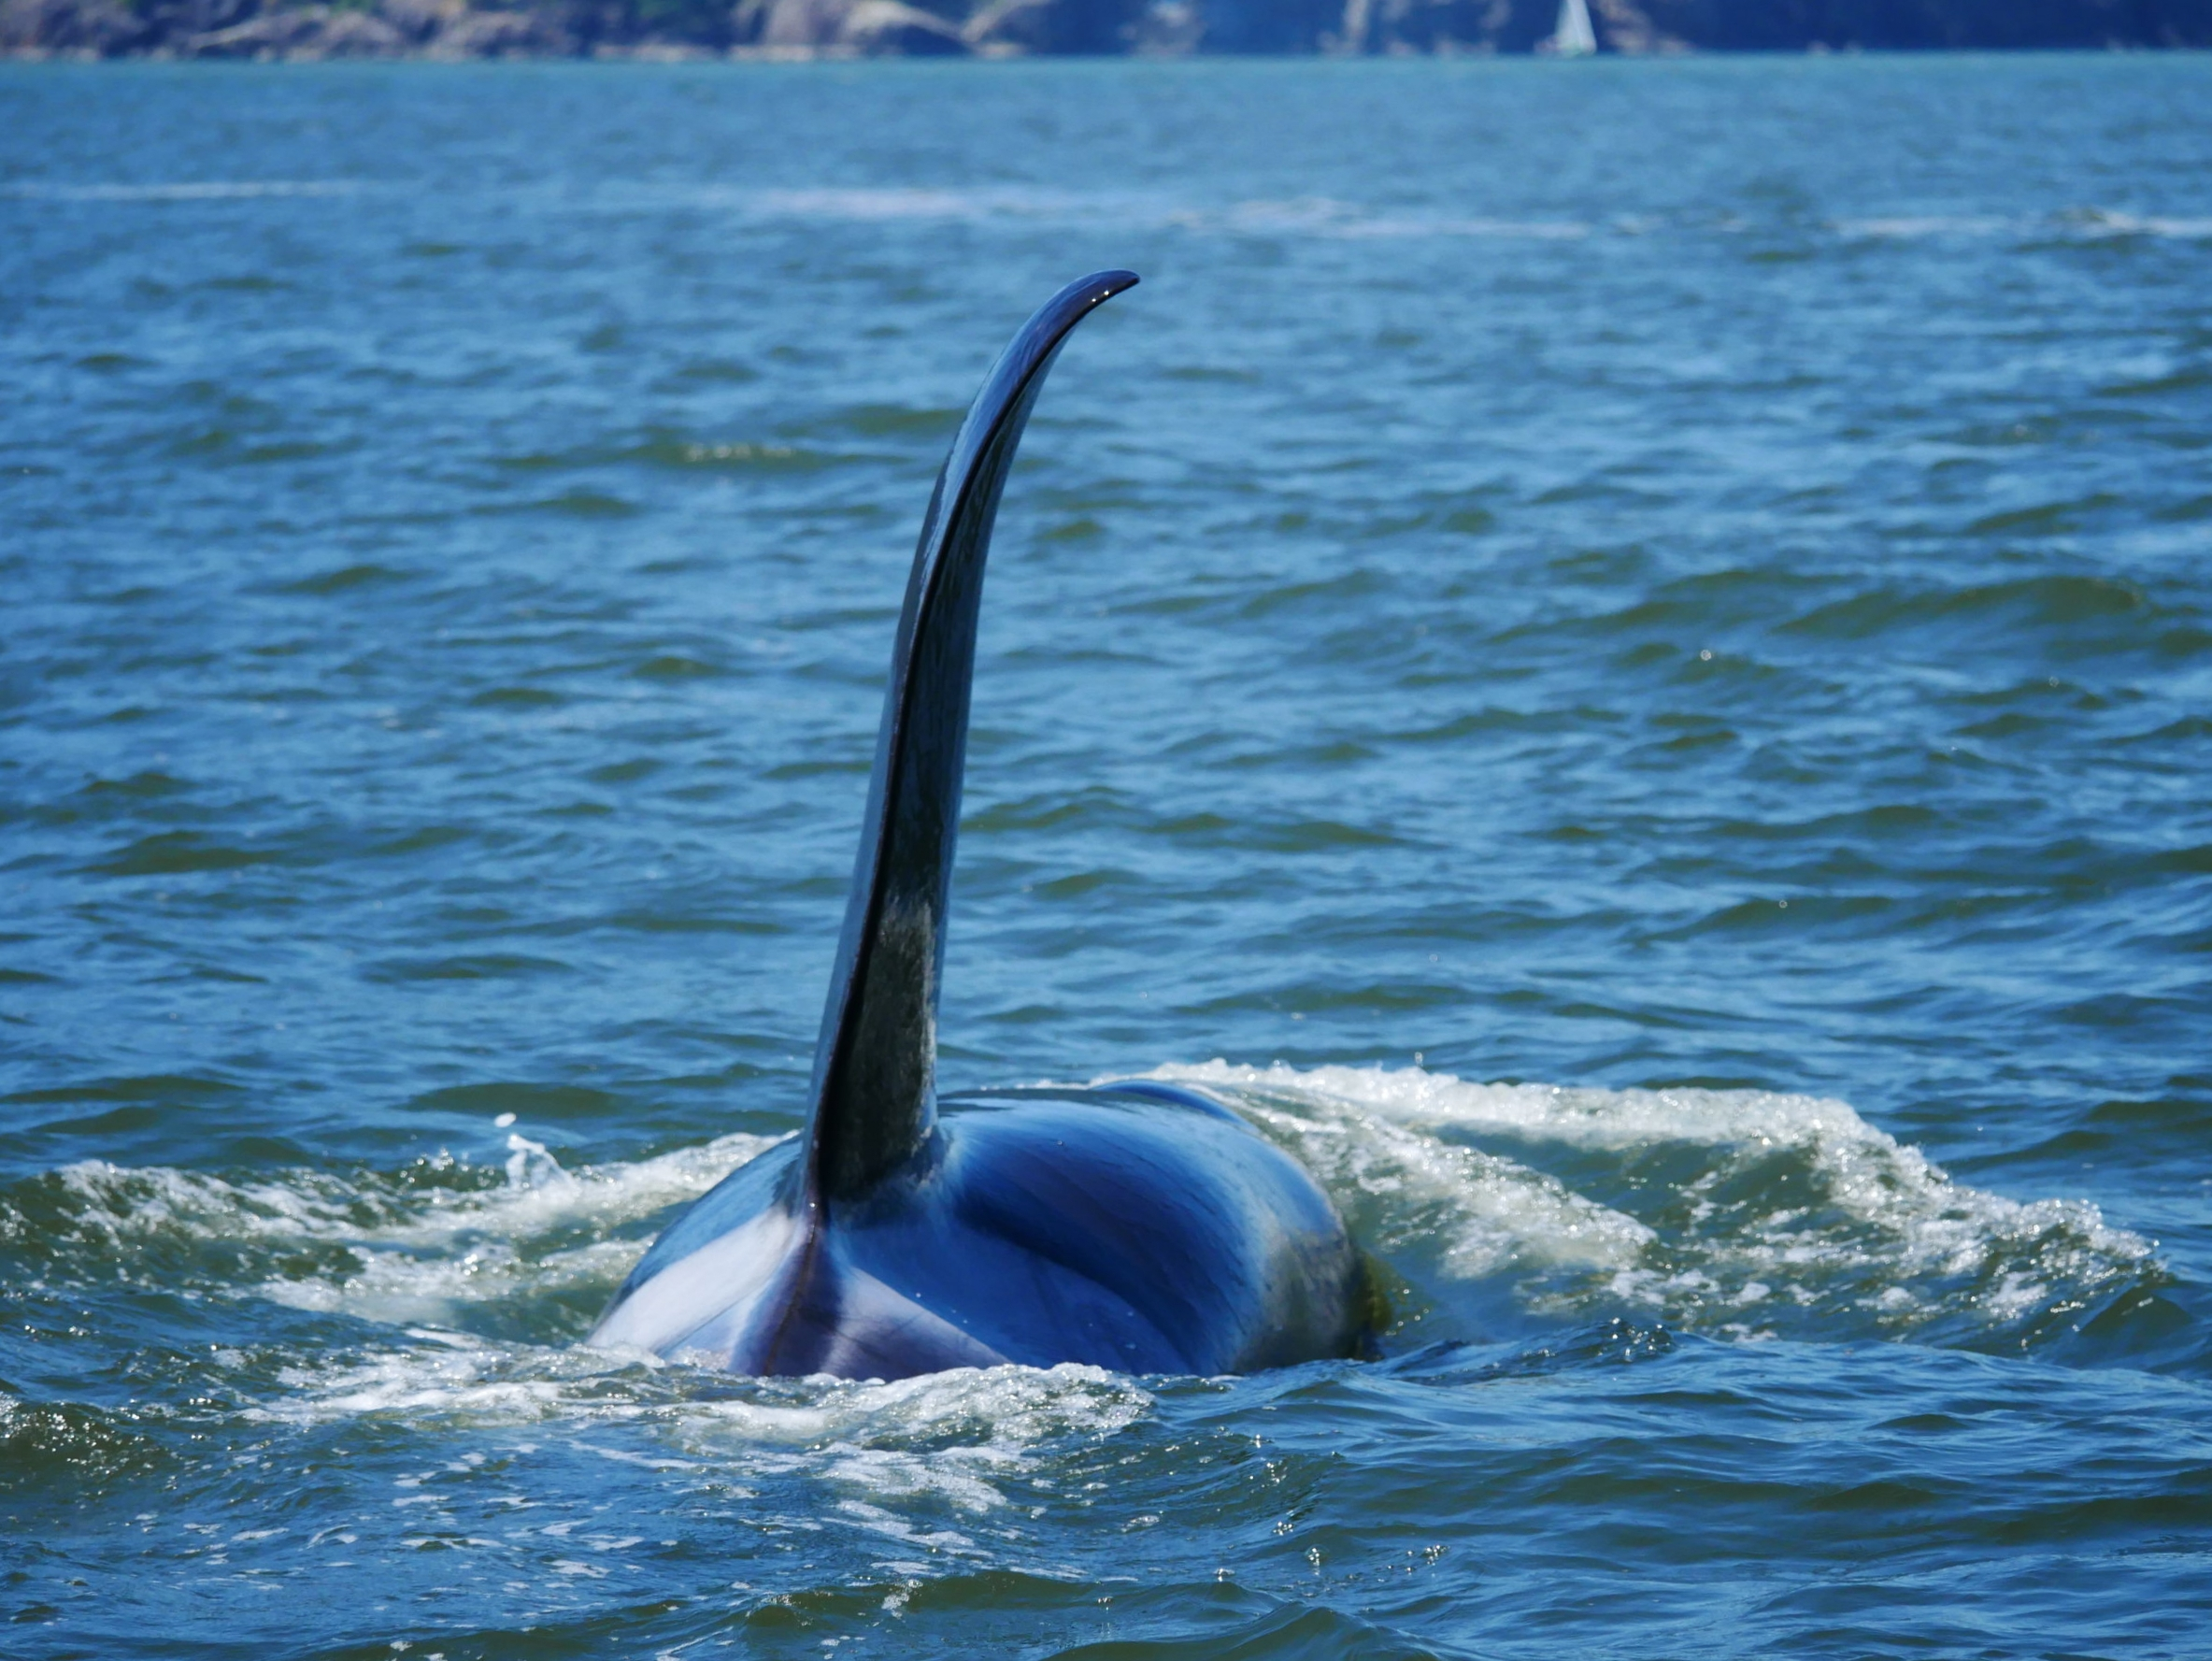 Look at the size of that dorsal fin! Photo by Val Watson.